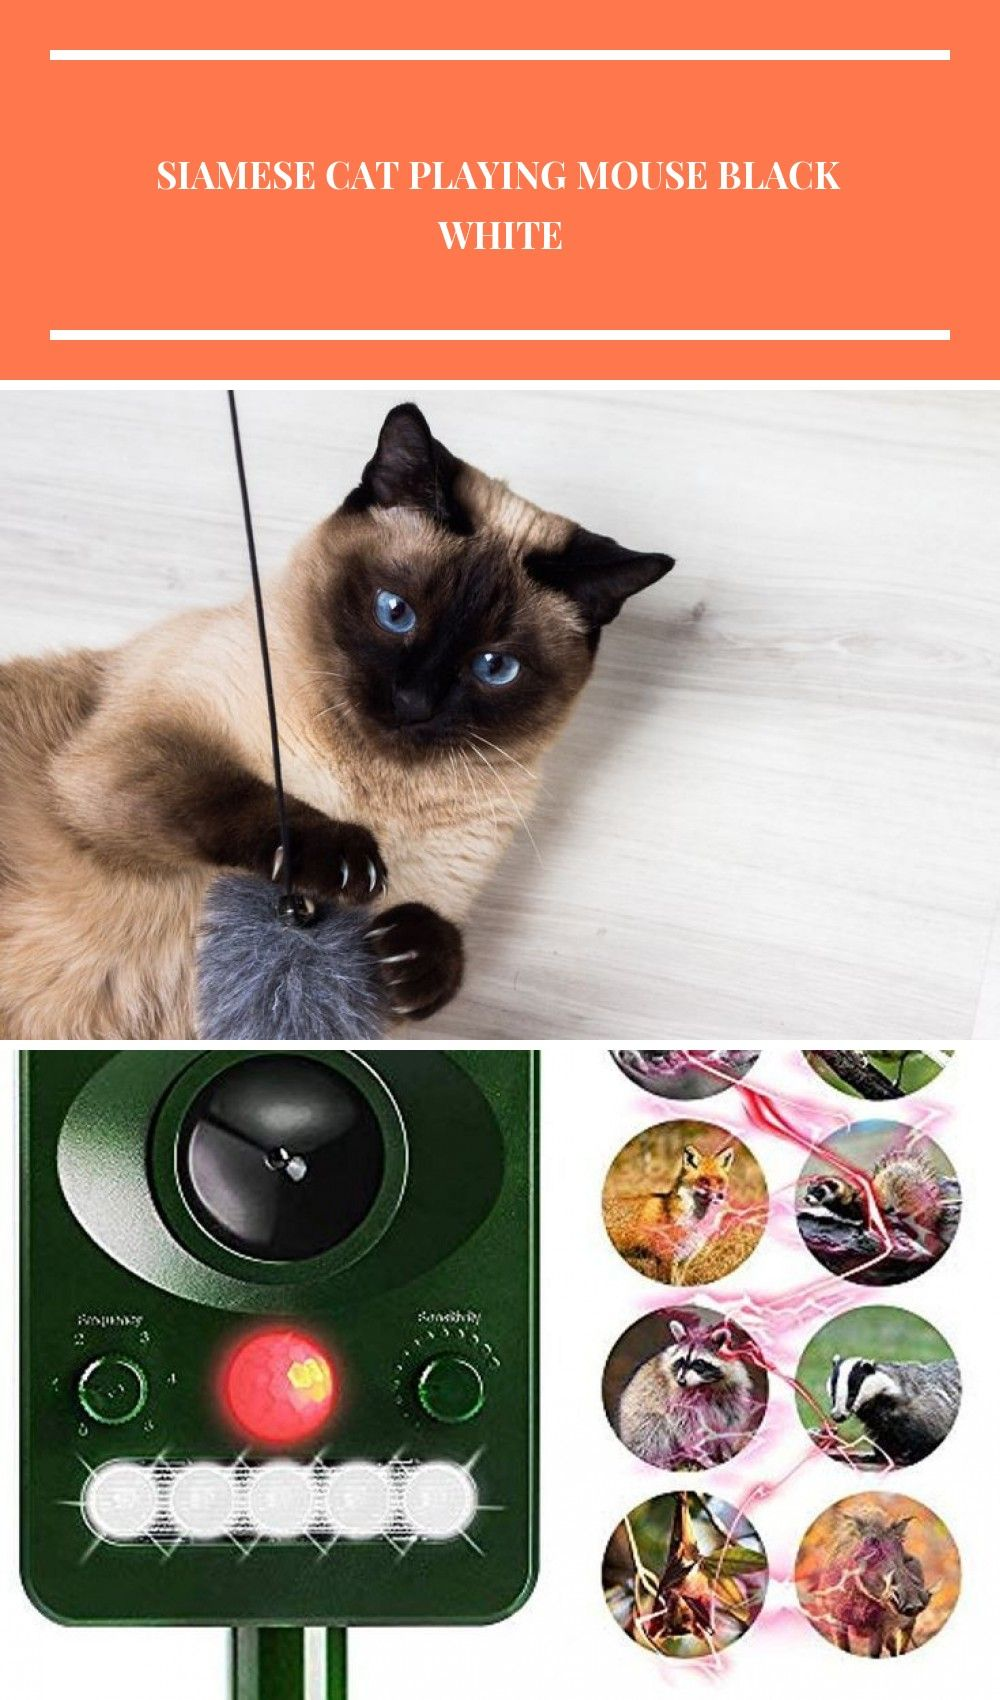 Siamese Cat Playing Mouse Black White  Siamese Cat  Ideas of Siamese Cat  Siamese Cat Playing Mouse Black White The post Siamese Cat Playing Mouse Black White appeared fi...